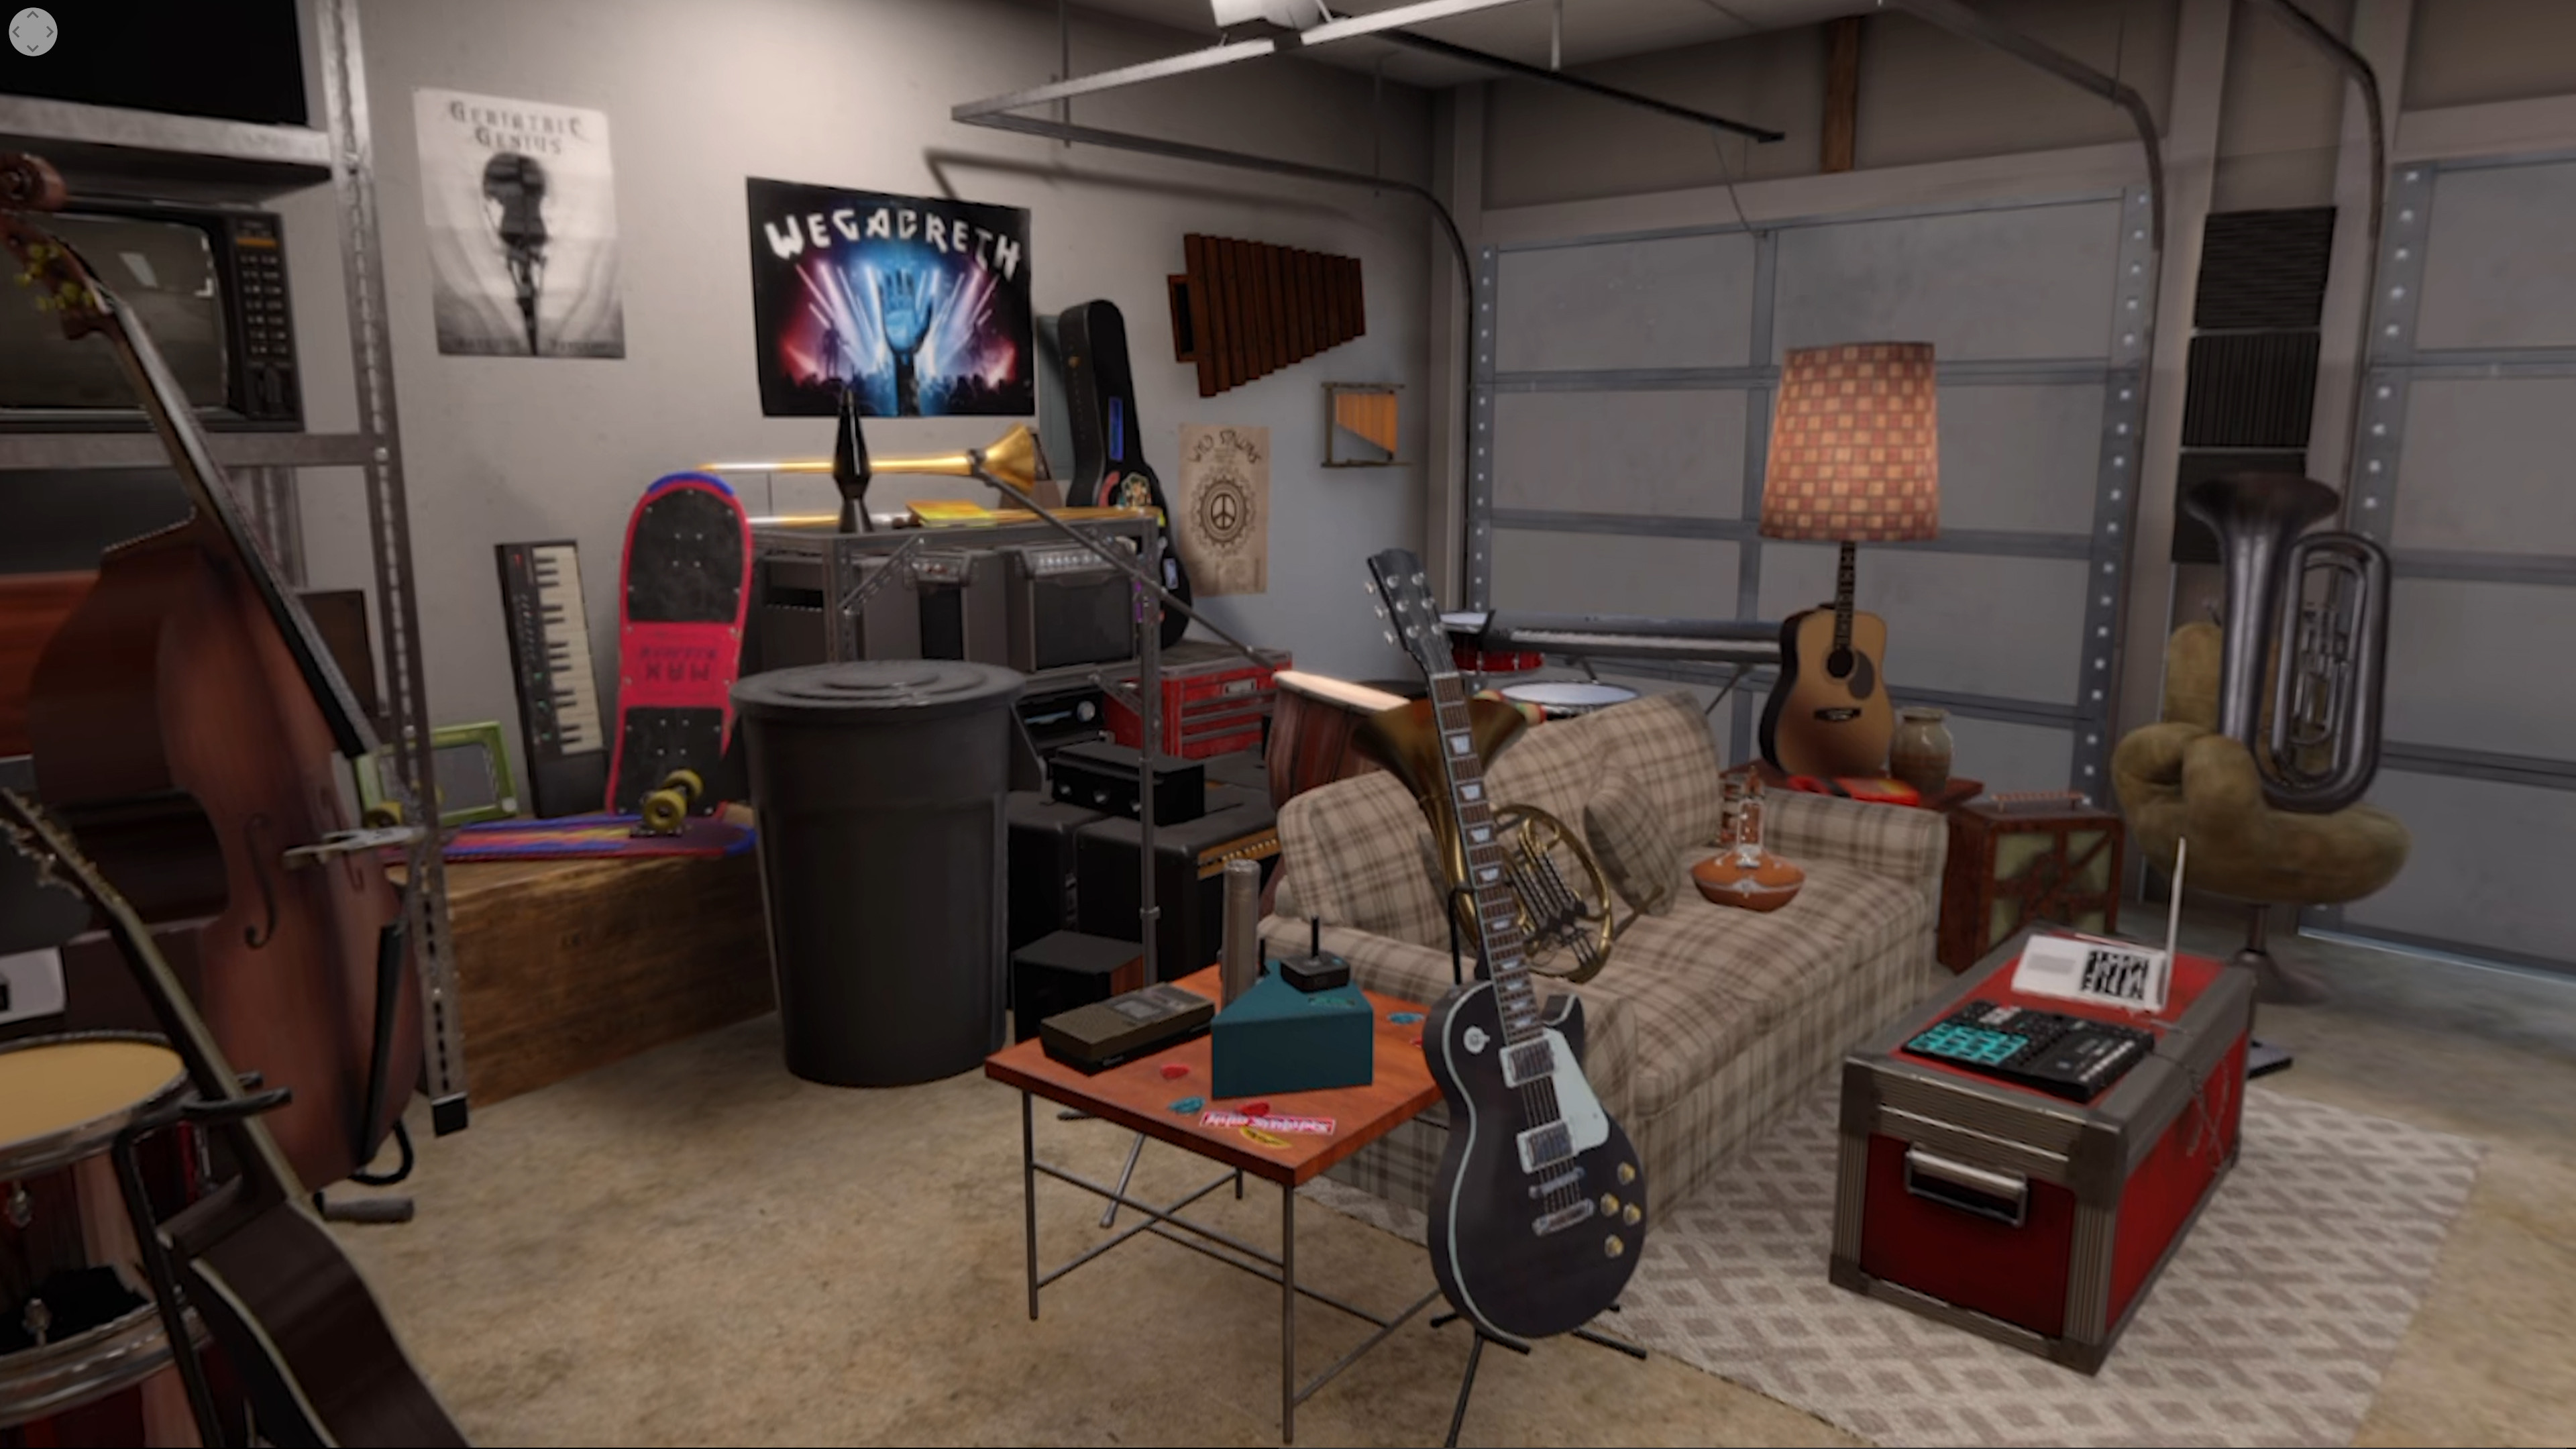 Created several props for the Garage level, including the sitar, guitars, and poster signage.